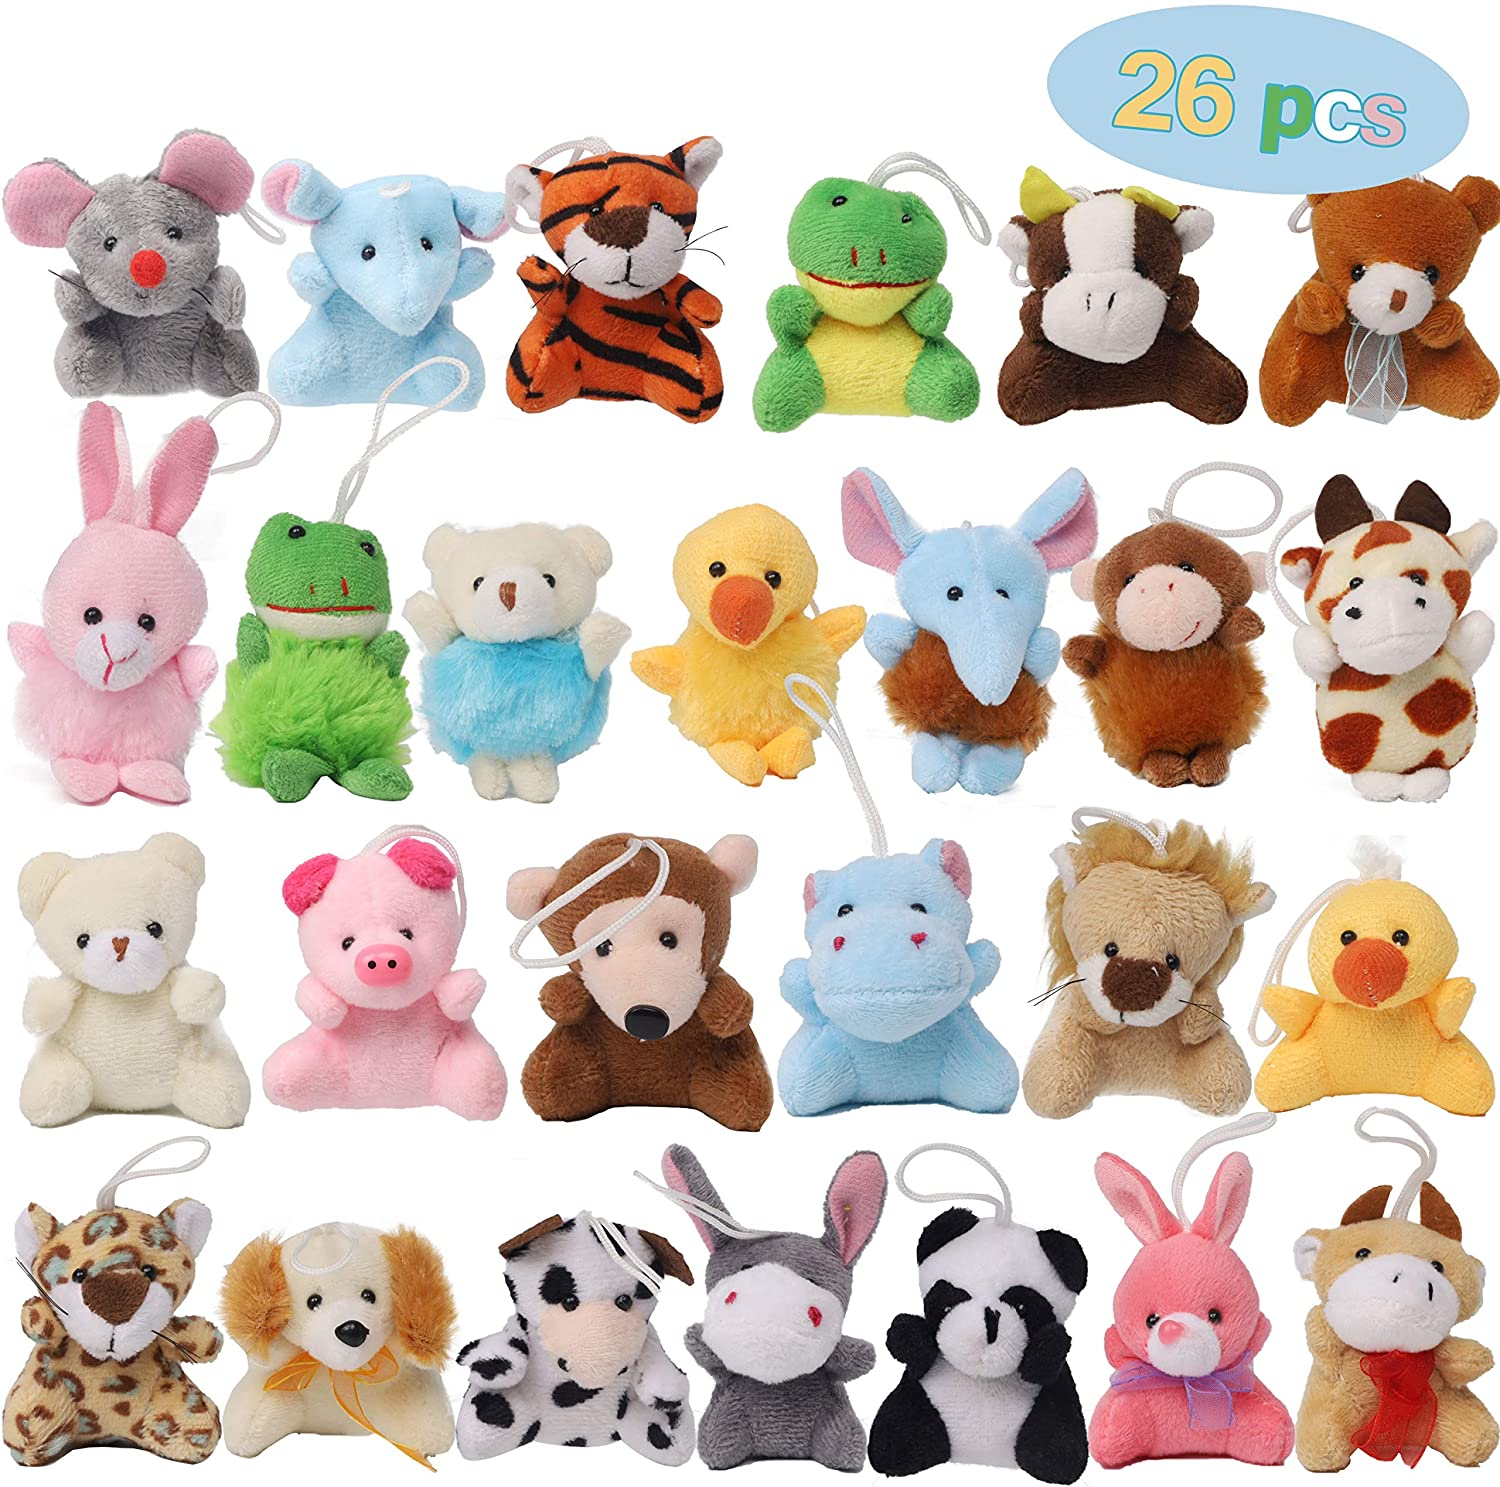 26 Pack Mini Animal Plush Toy Set Aitbay Cute Small Stuffed Animal Keychain Set Goodie Bag Fillers Carnival Prizes For Kids Assortment Kids Valentine Gift Easter Egg Filter Party Favors Walmart Com